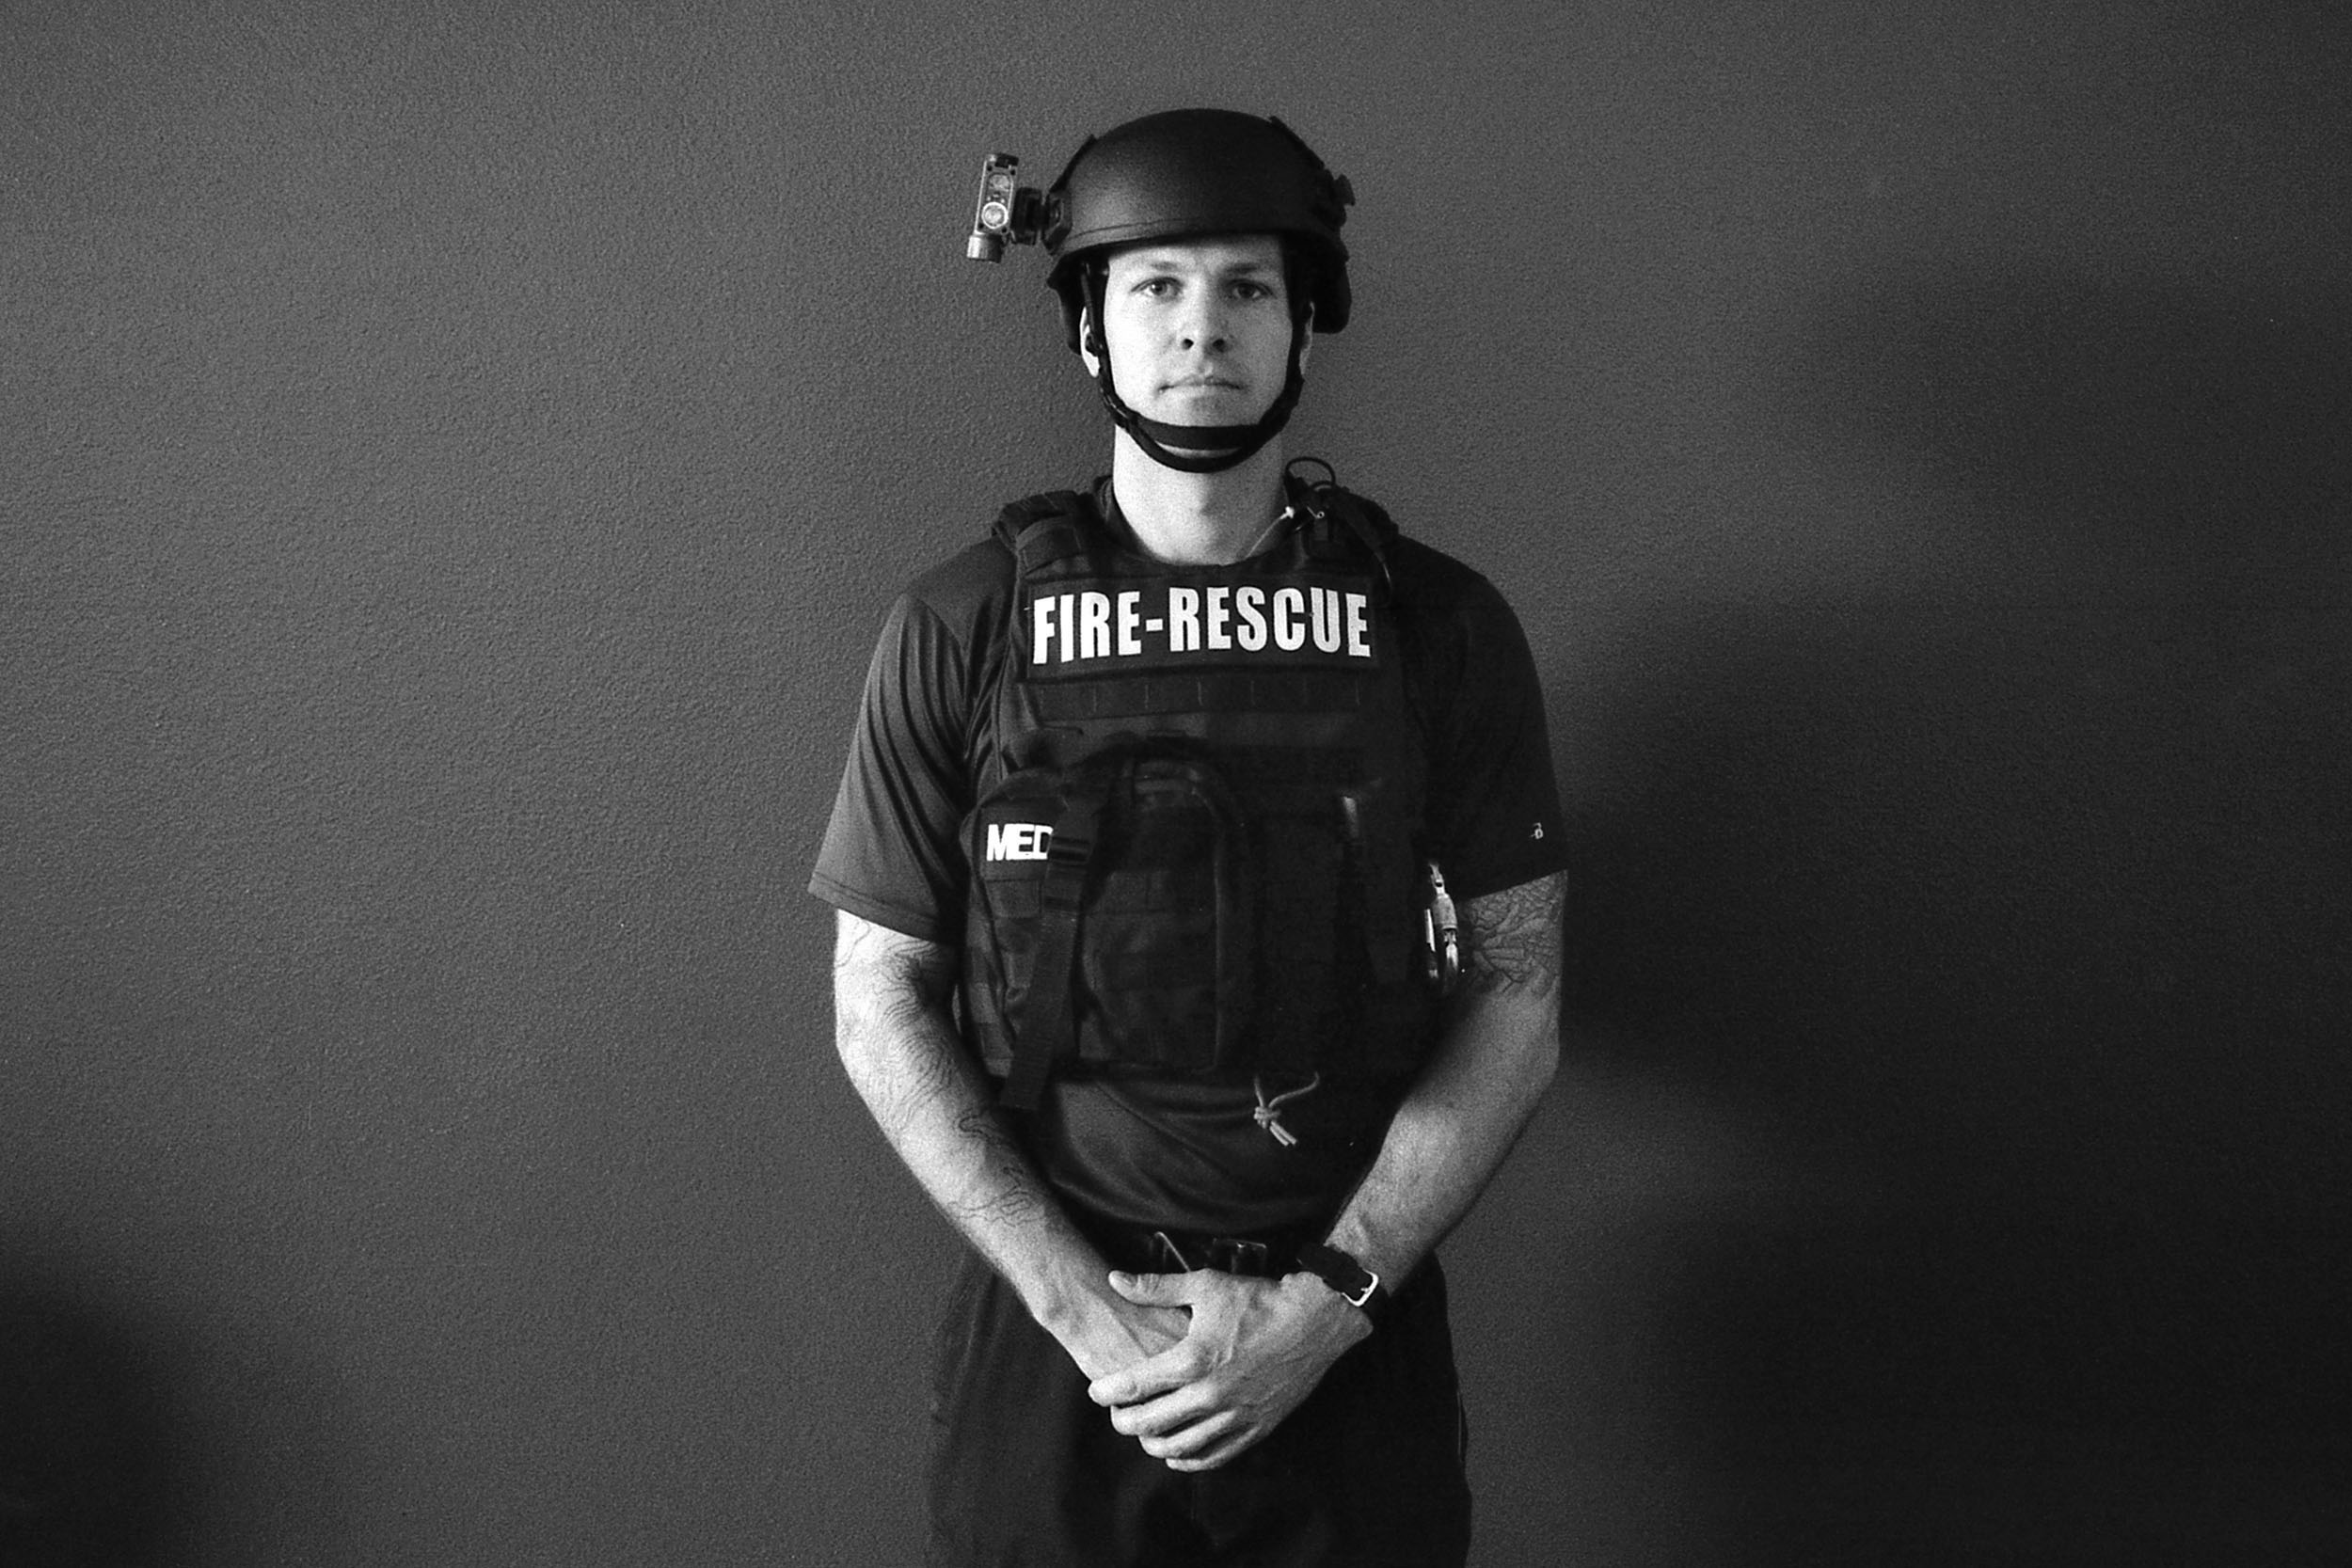 Adam Fry, 34, Tactical Rescue, San Antonio Fire Department, Station 11.